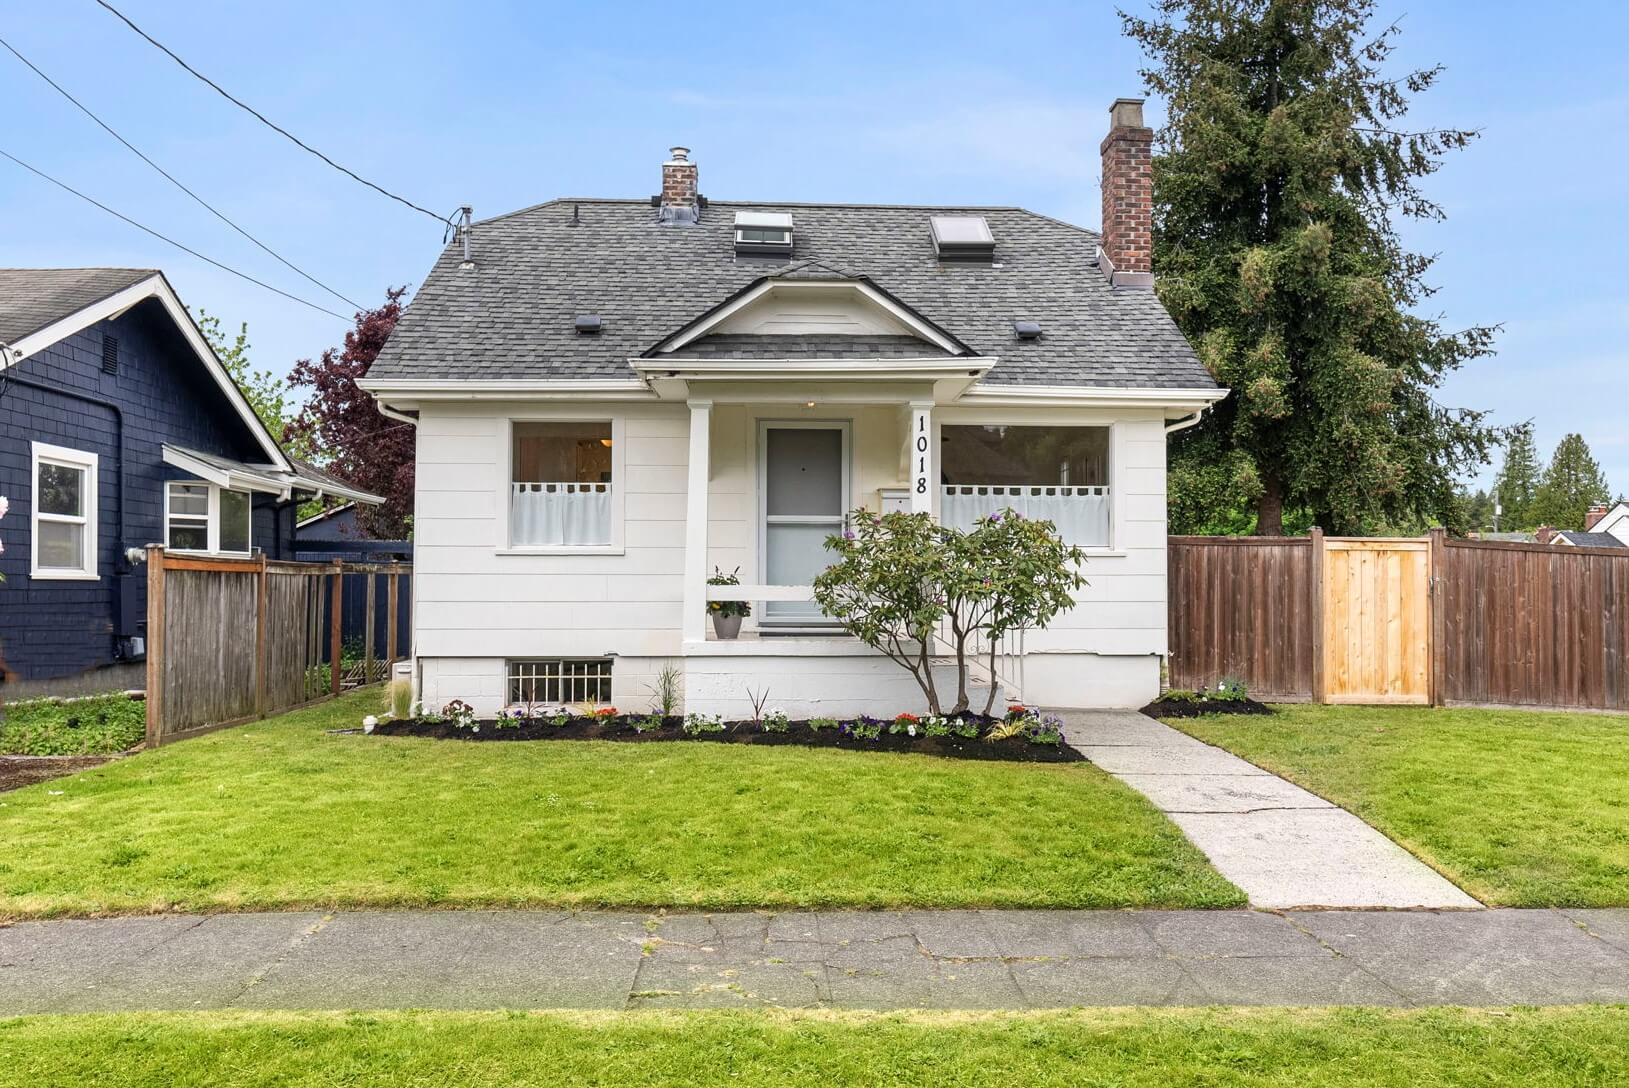 Charming 1925 bungalow near the University of Puget Sound